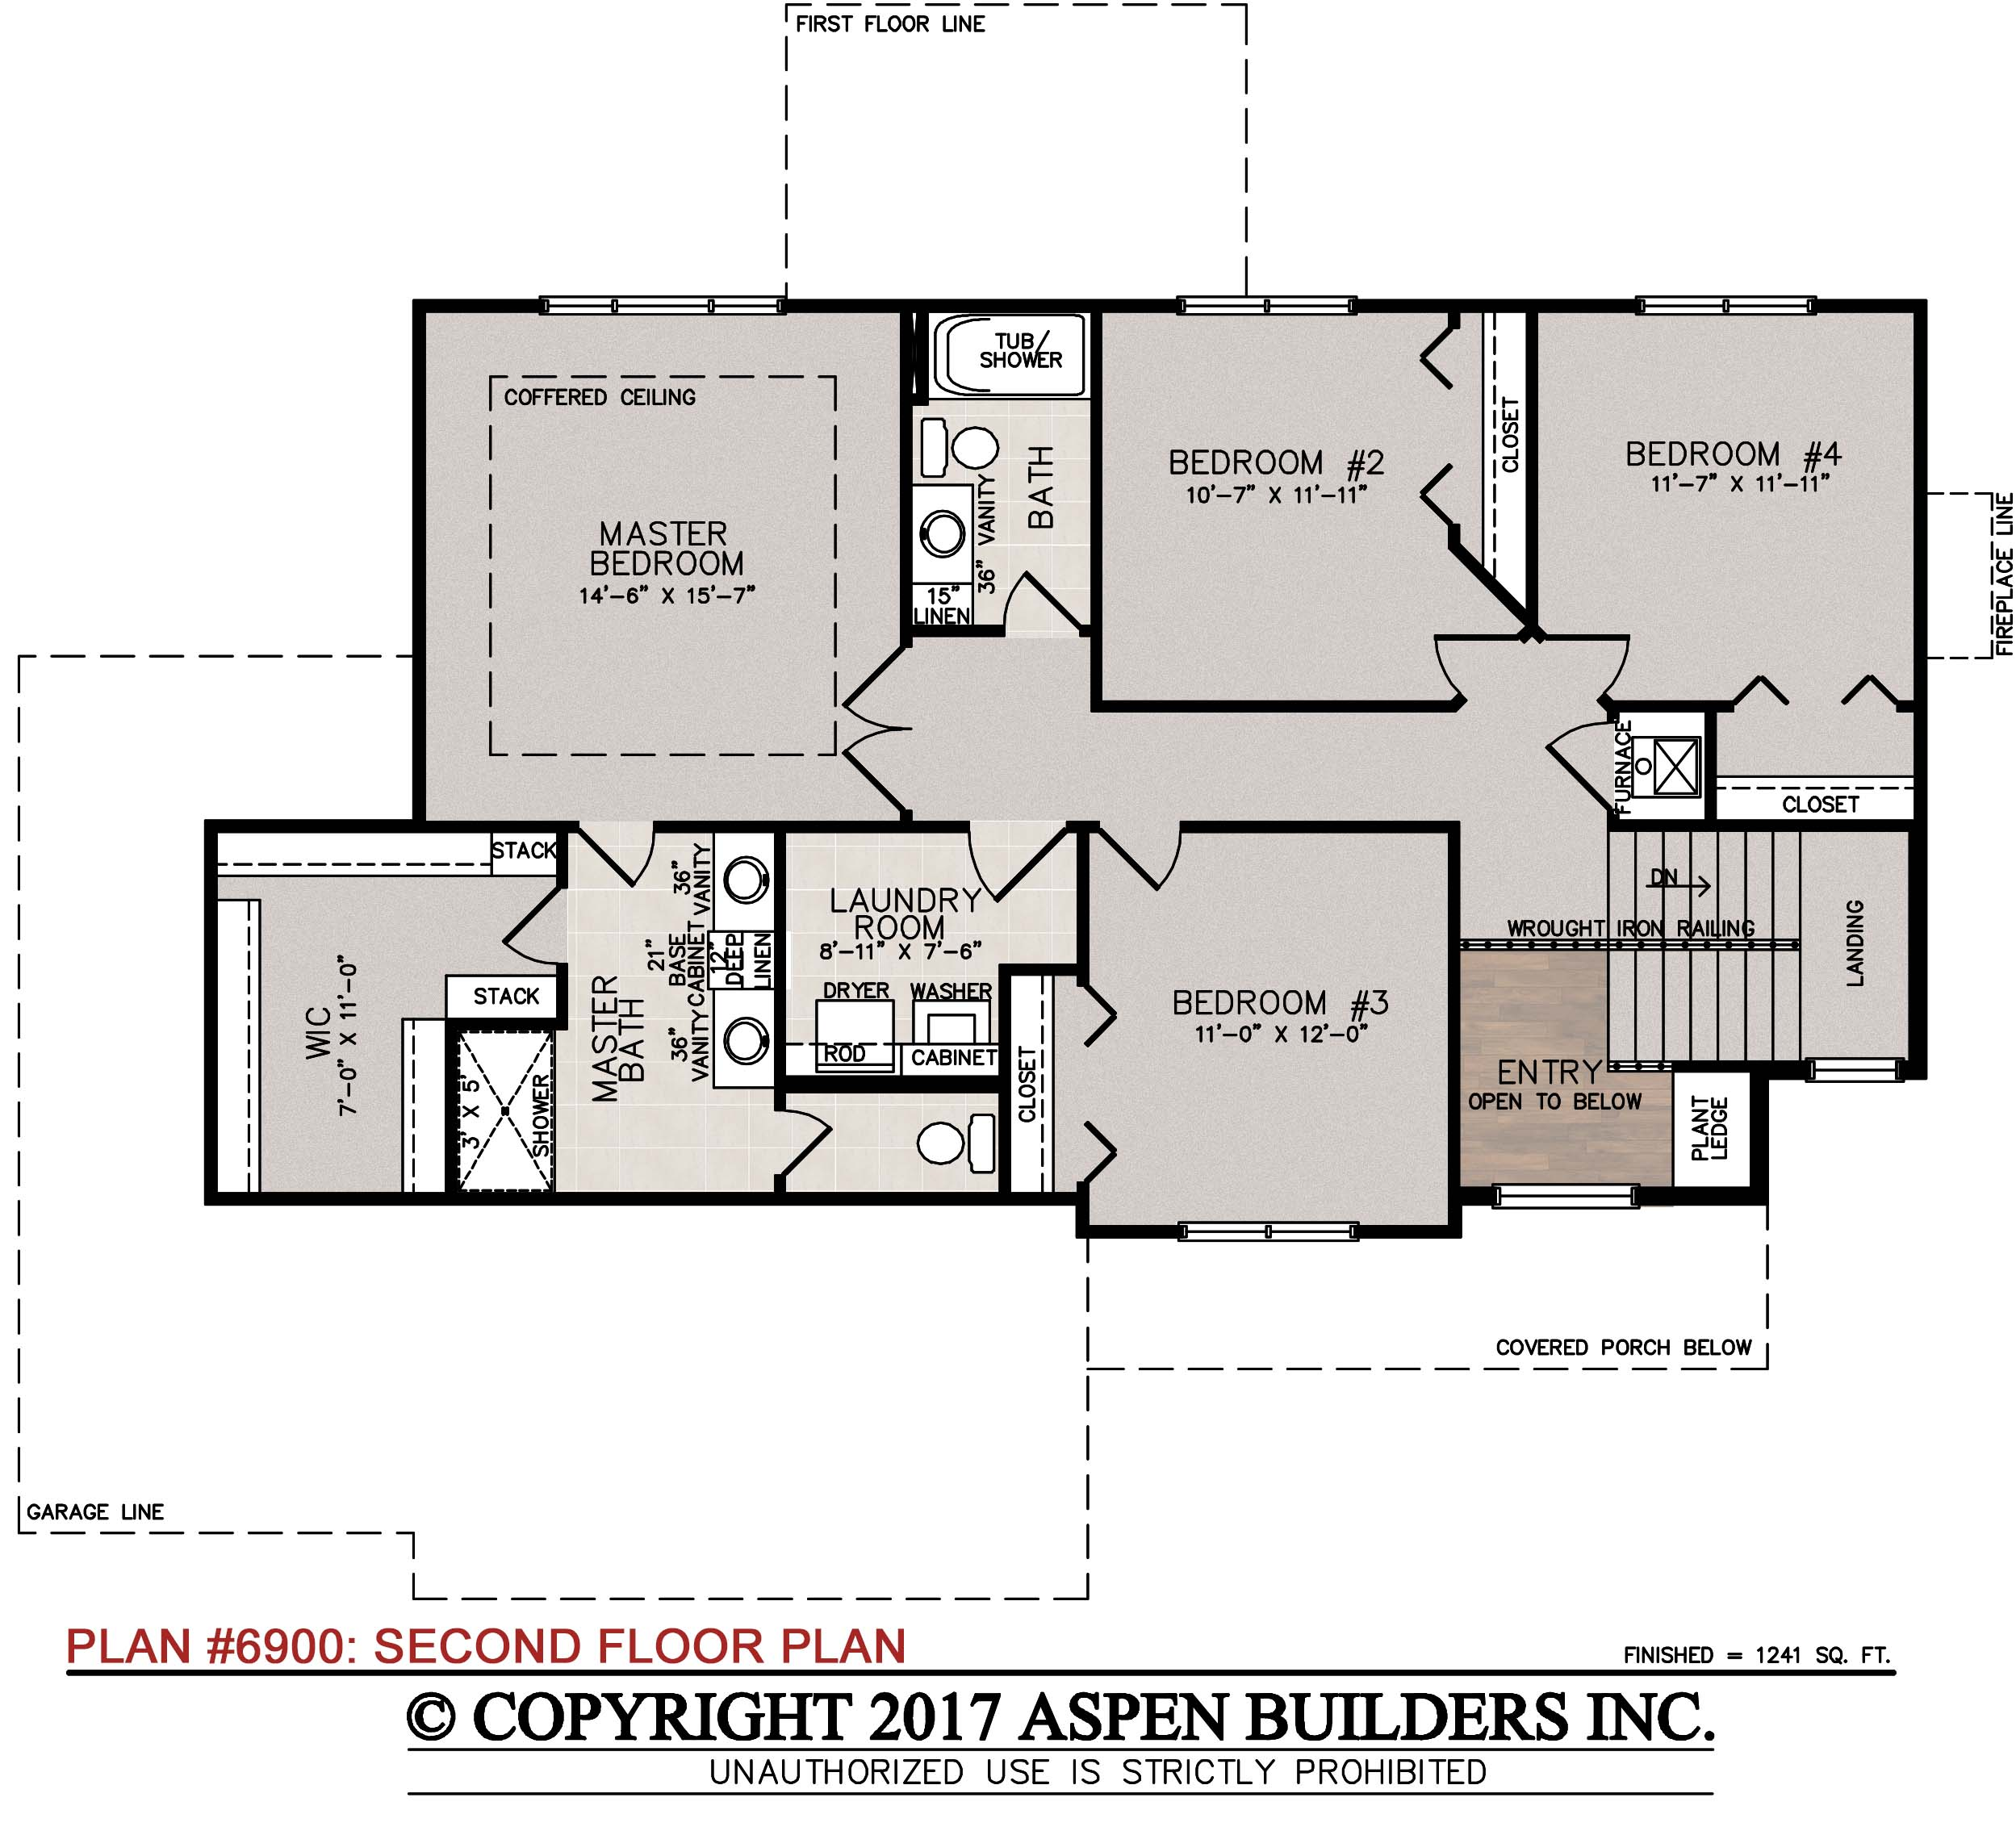 Best of custom built homes floor plans house floor ideas for Custom built house plans